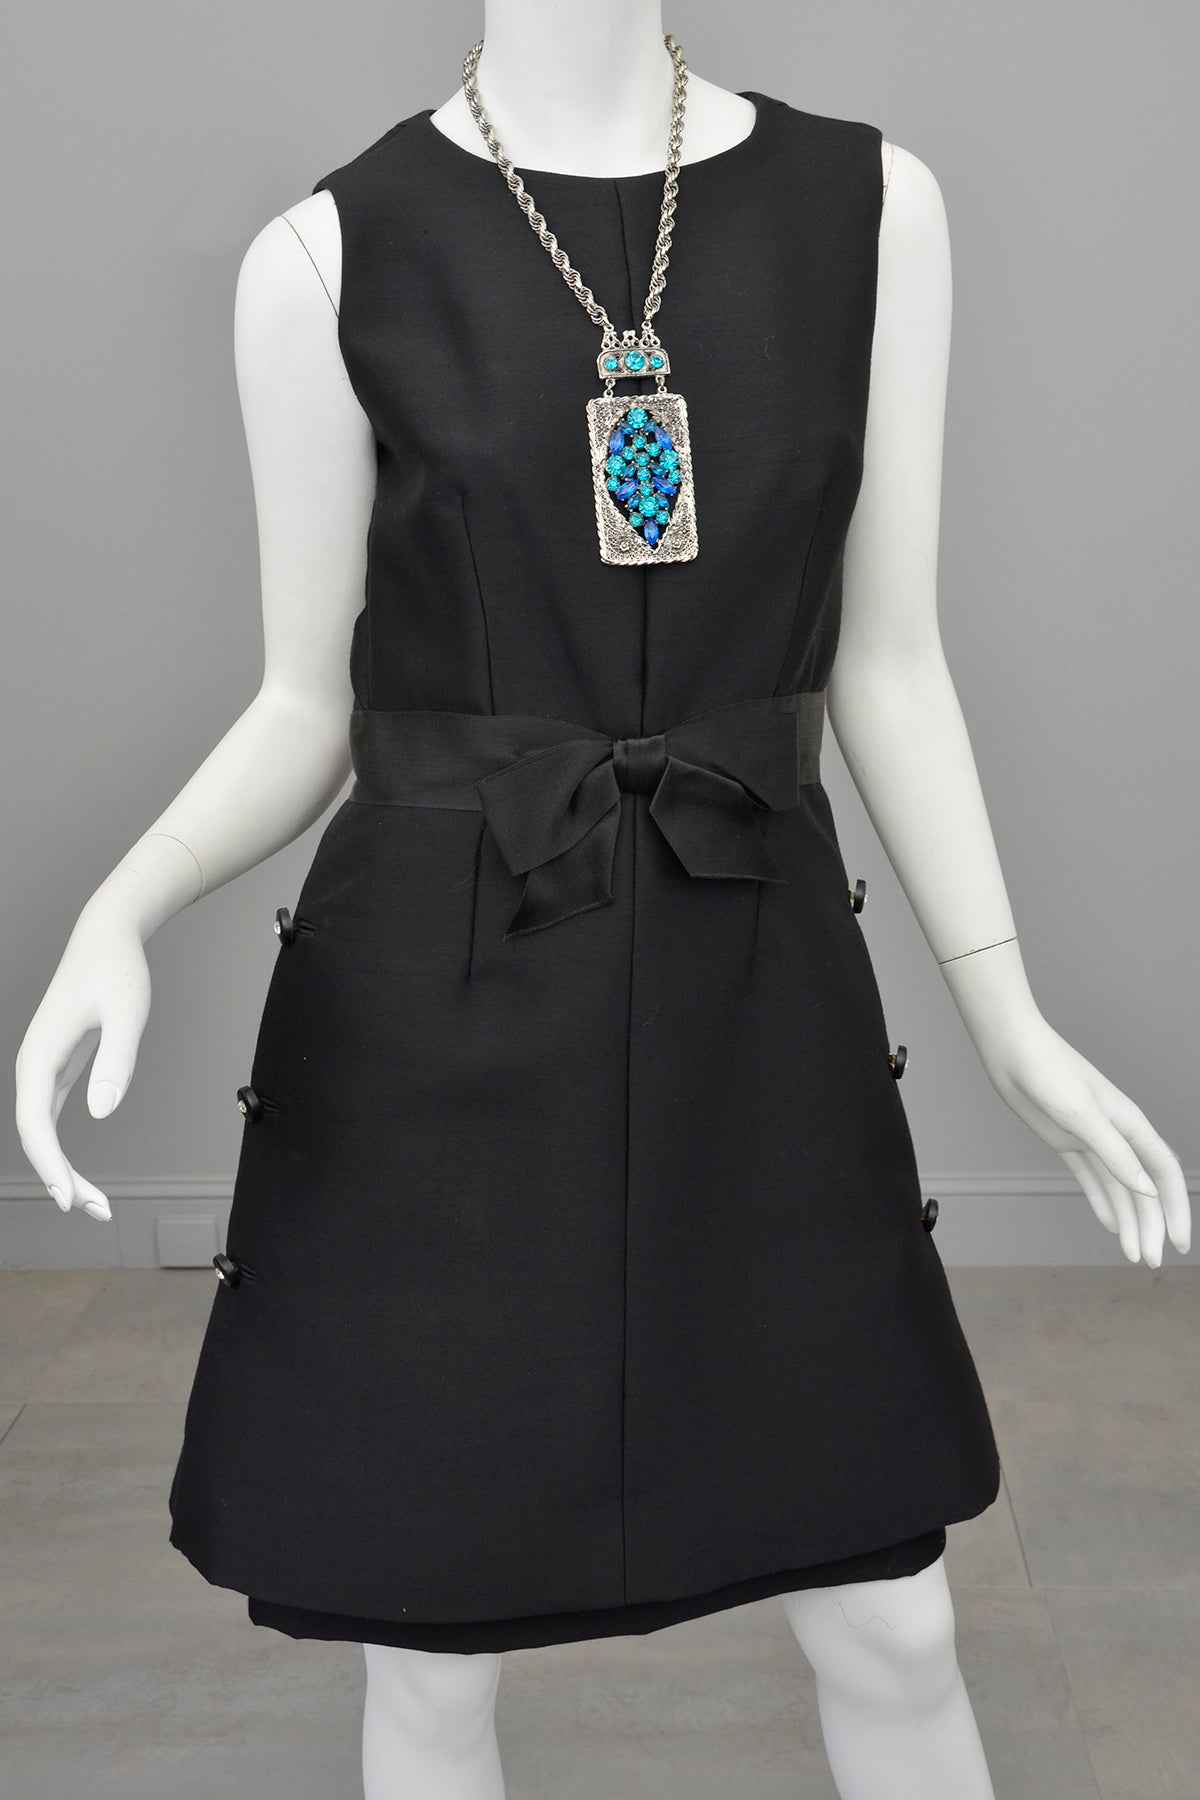 1960s MOD Little Black Dress with Crystal Buttons and 'Peplum' Skirt